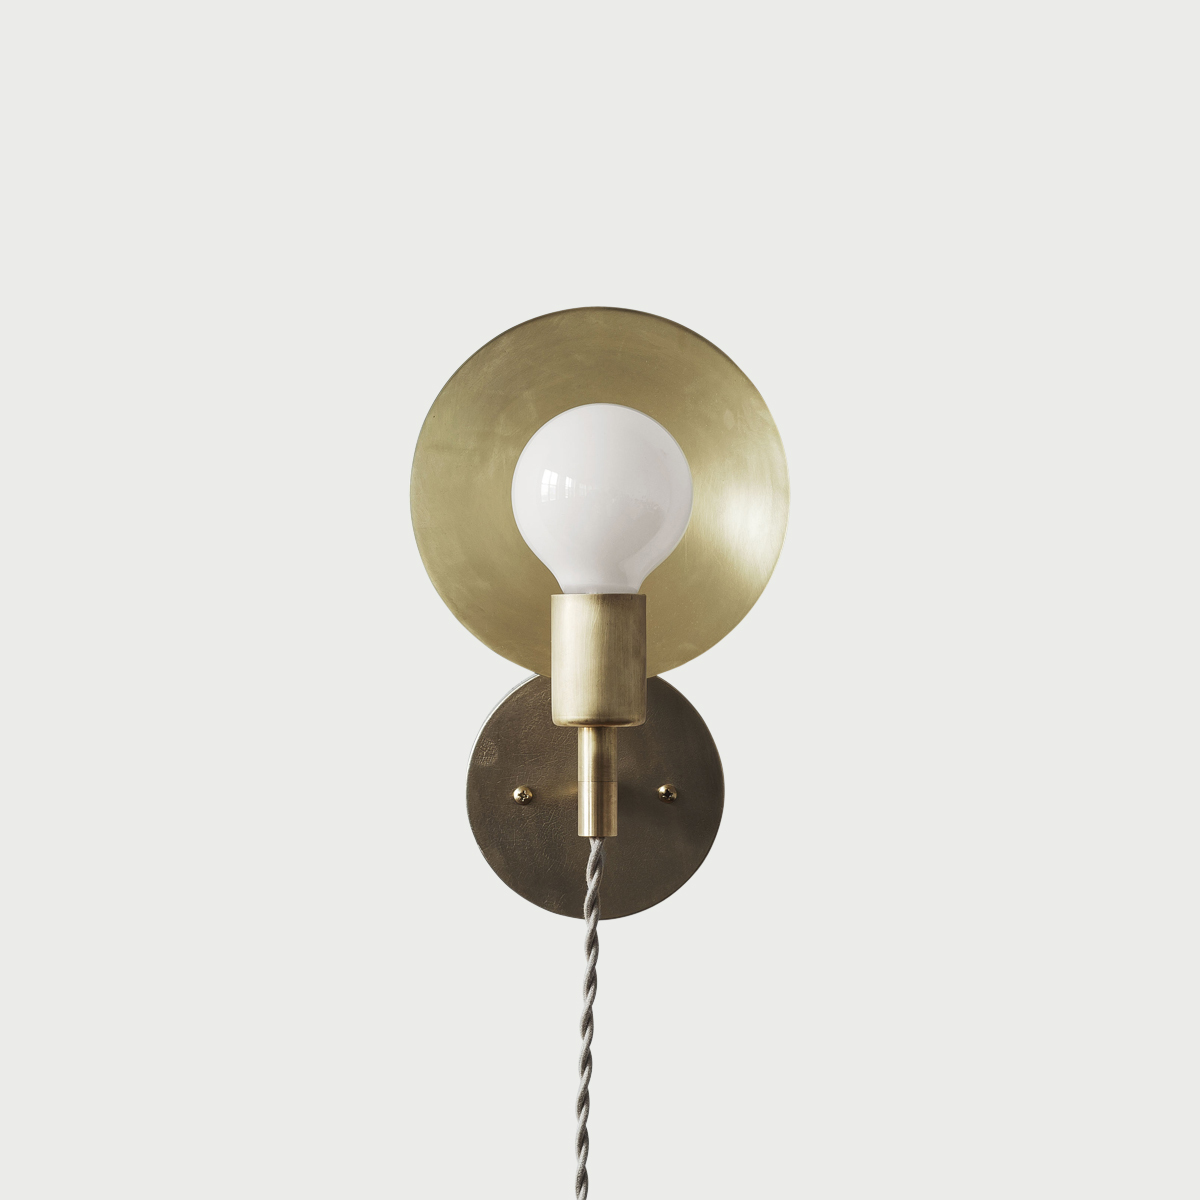 Sconce plug in front